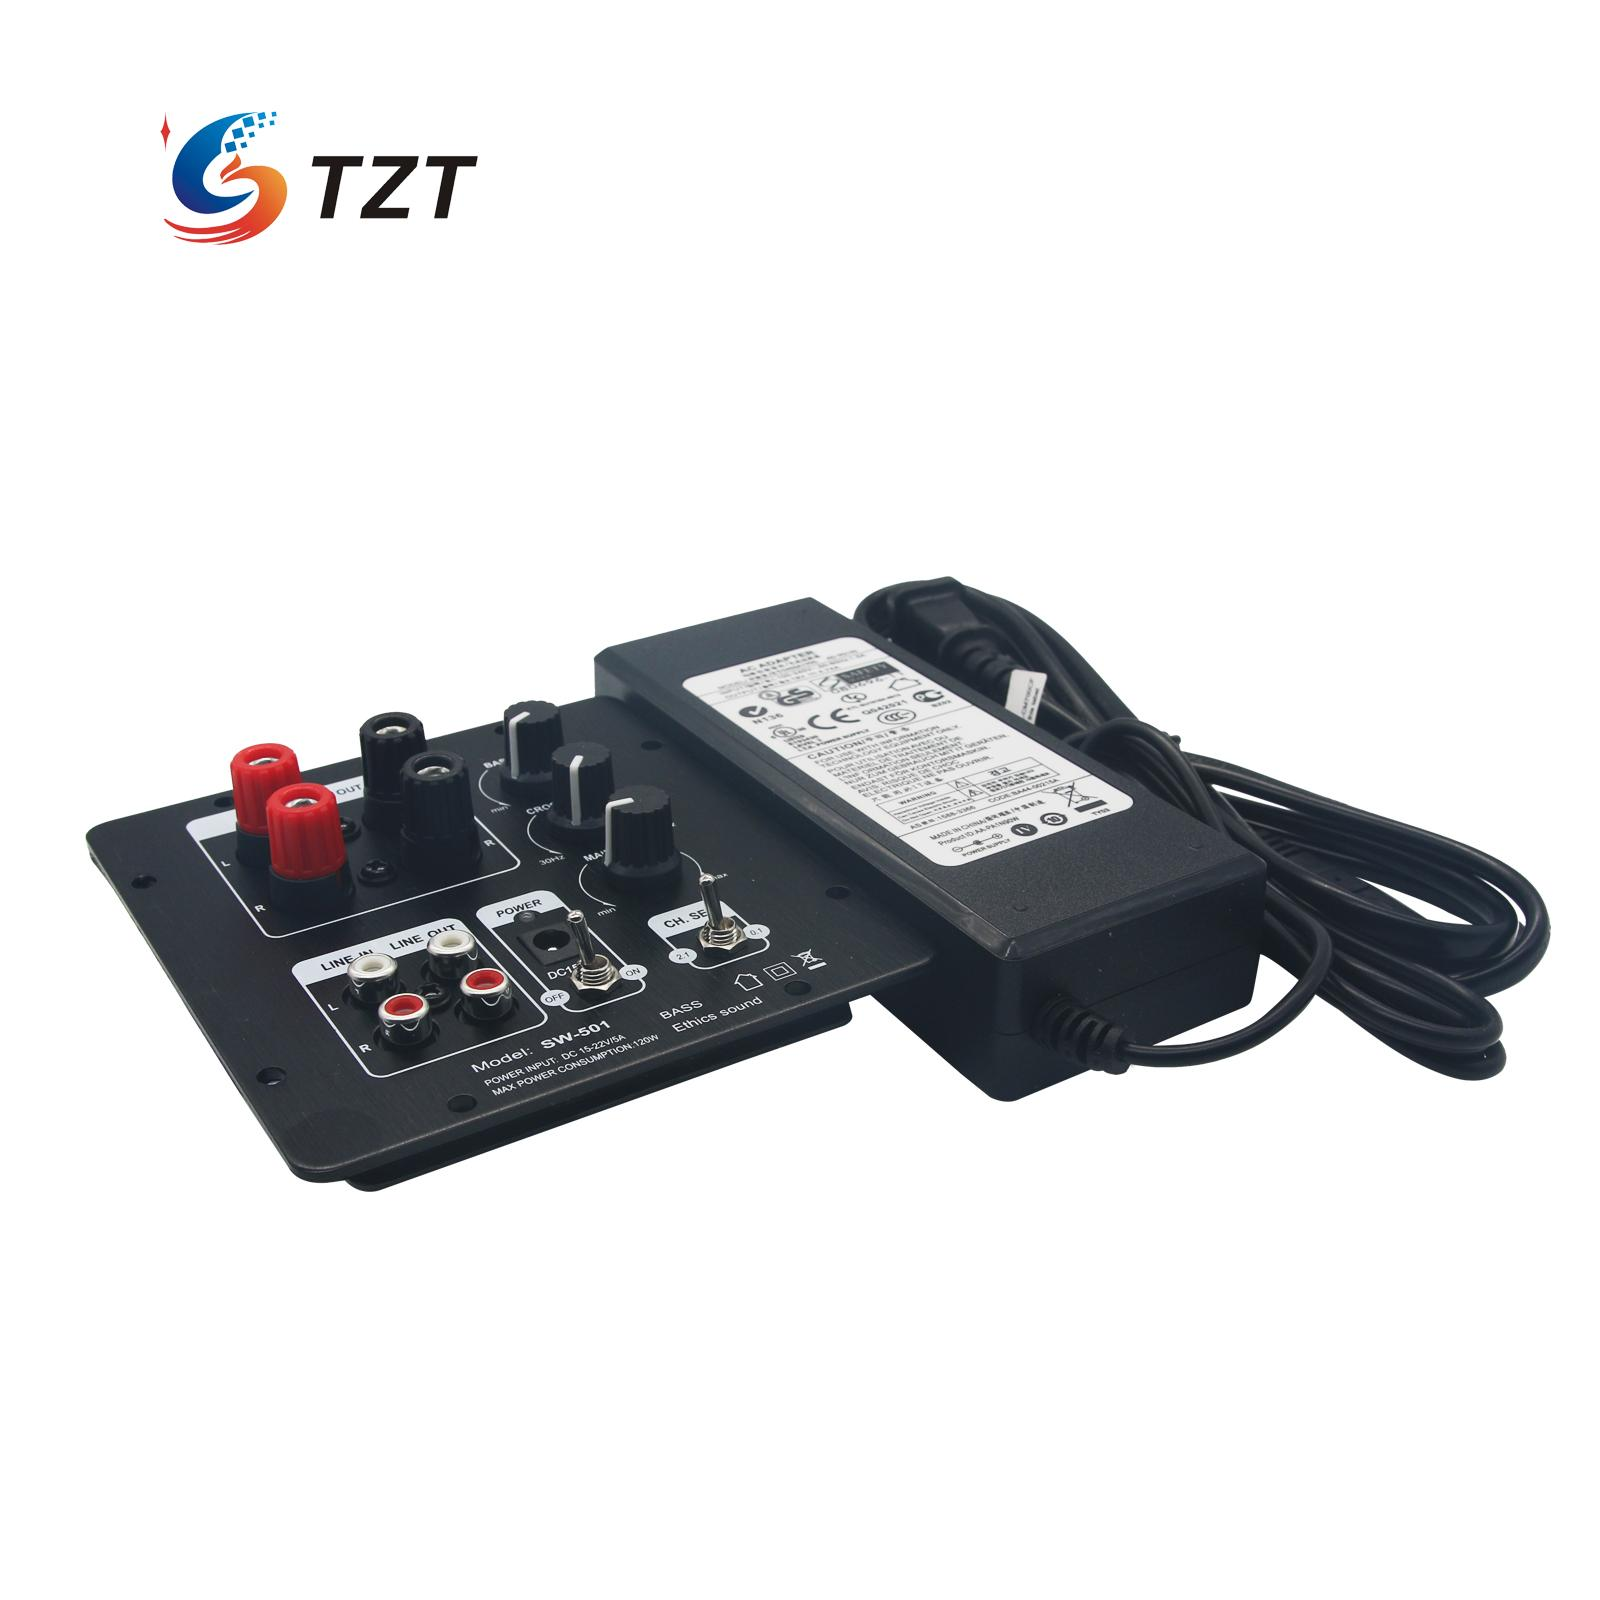 TPA3118 Digital Audio Power Amplifier Board 60W+30Wx2 HIFI Subwoofer Amp with Power Supply music hall mini stereo digital power amplifier hifi 2 0 audio amp 50w 50w treble bass black with 24v power supply